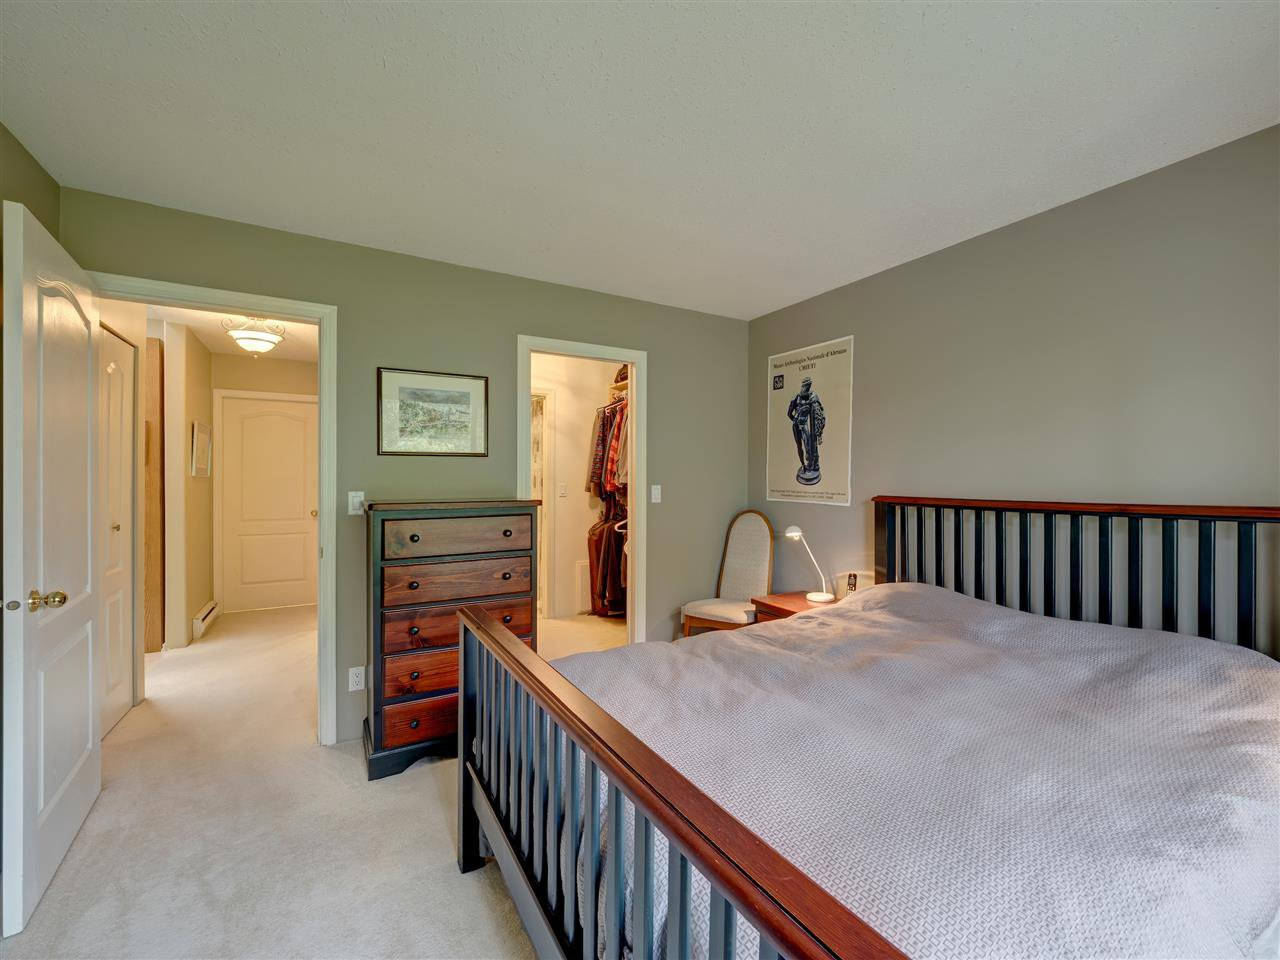 """Photo 18: Photos: 41 555 EAGLECREST Drive in Gibsons: Gibsons & Area Townhouse for sale in """"GEORGIA MIRAGE"""" (Sunshine Coast)  : MLS®# R2485008"""